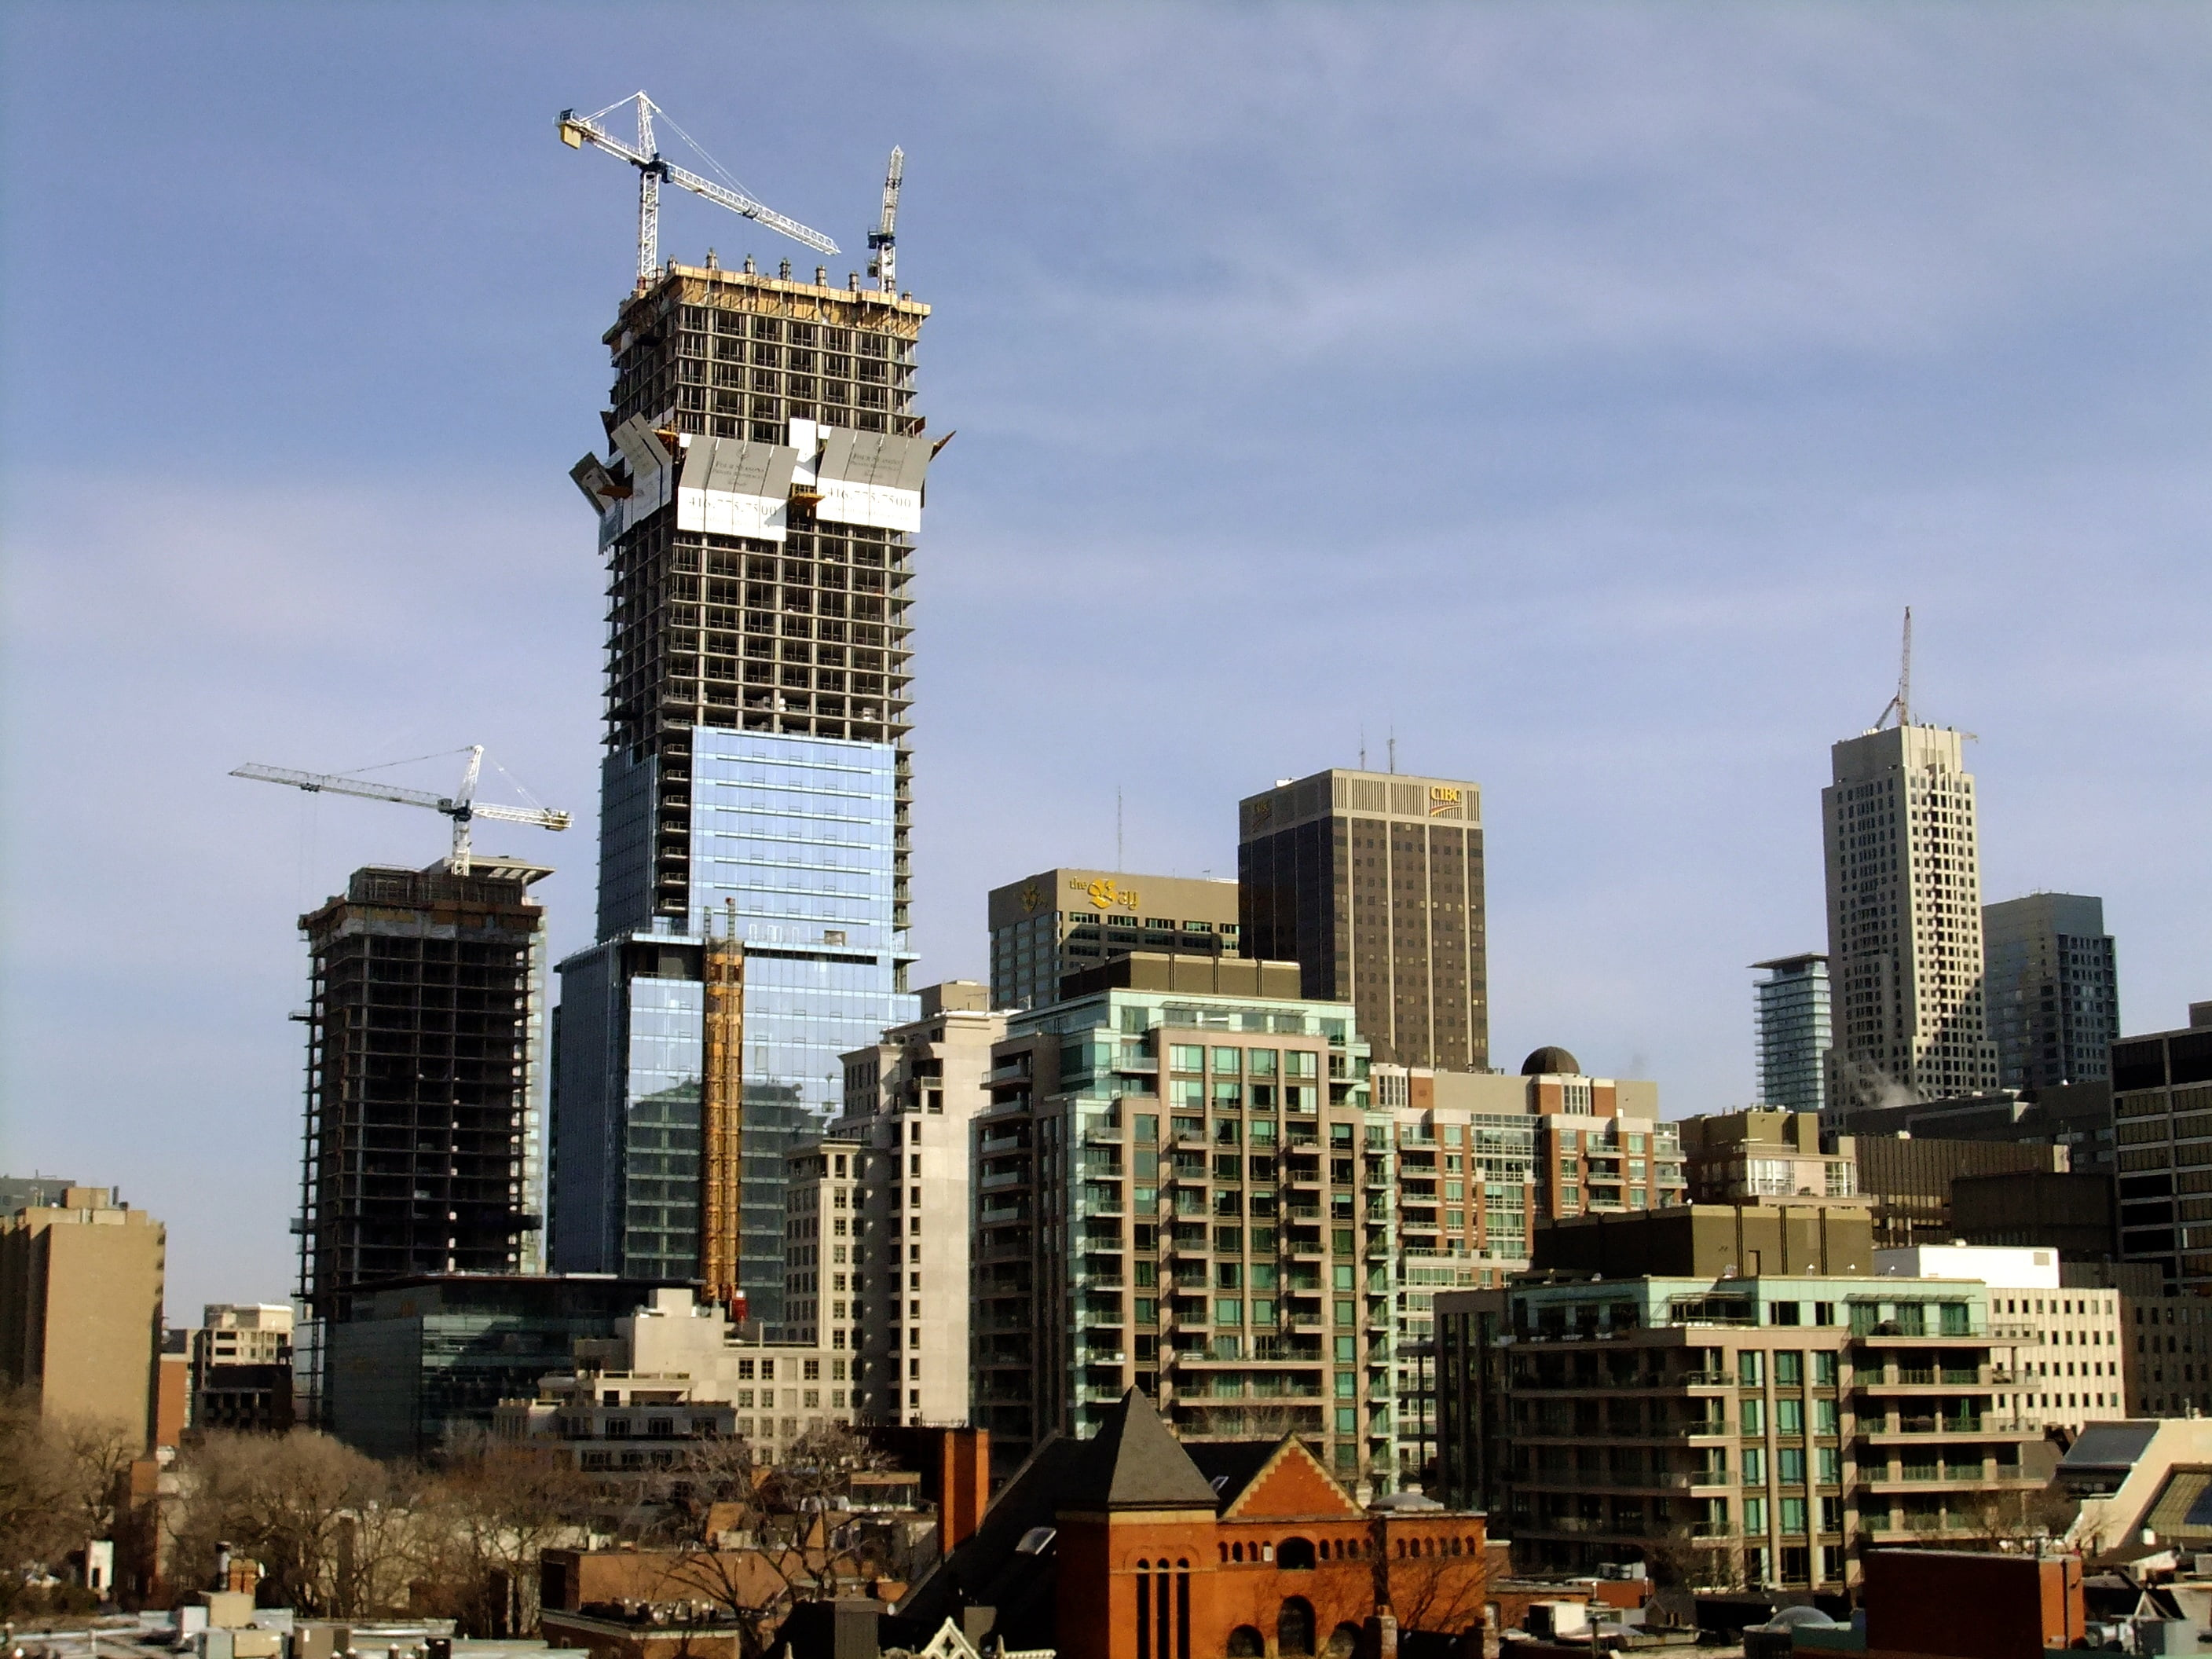 The Four Seasons Private Residences Toronto – Luxury Condominium Building & Hotel To Be New Capital of Yorkville